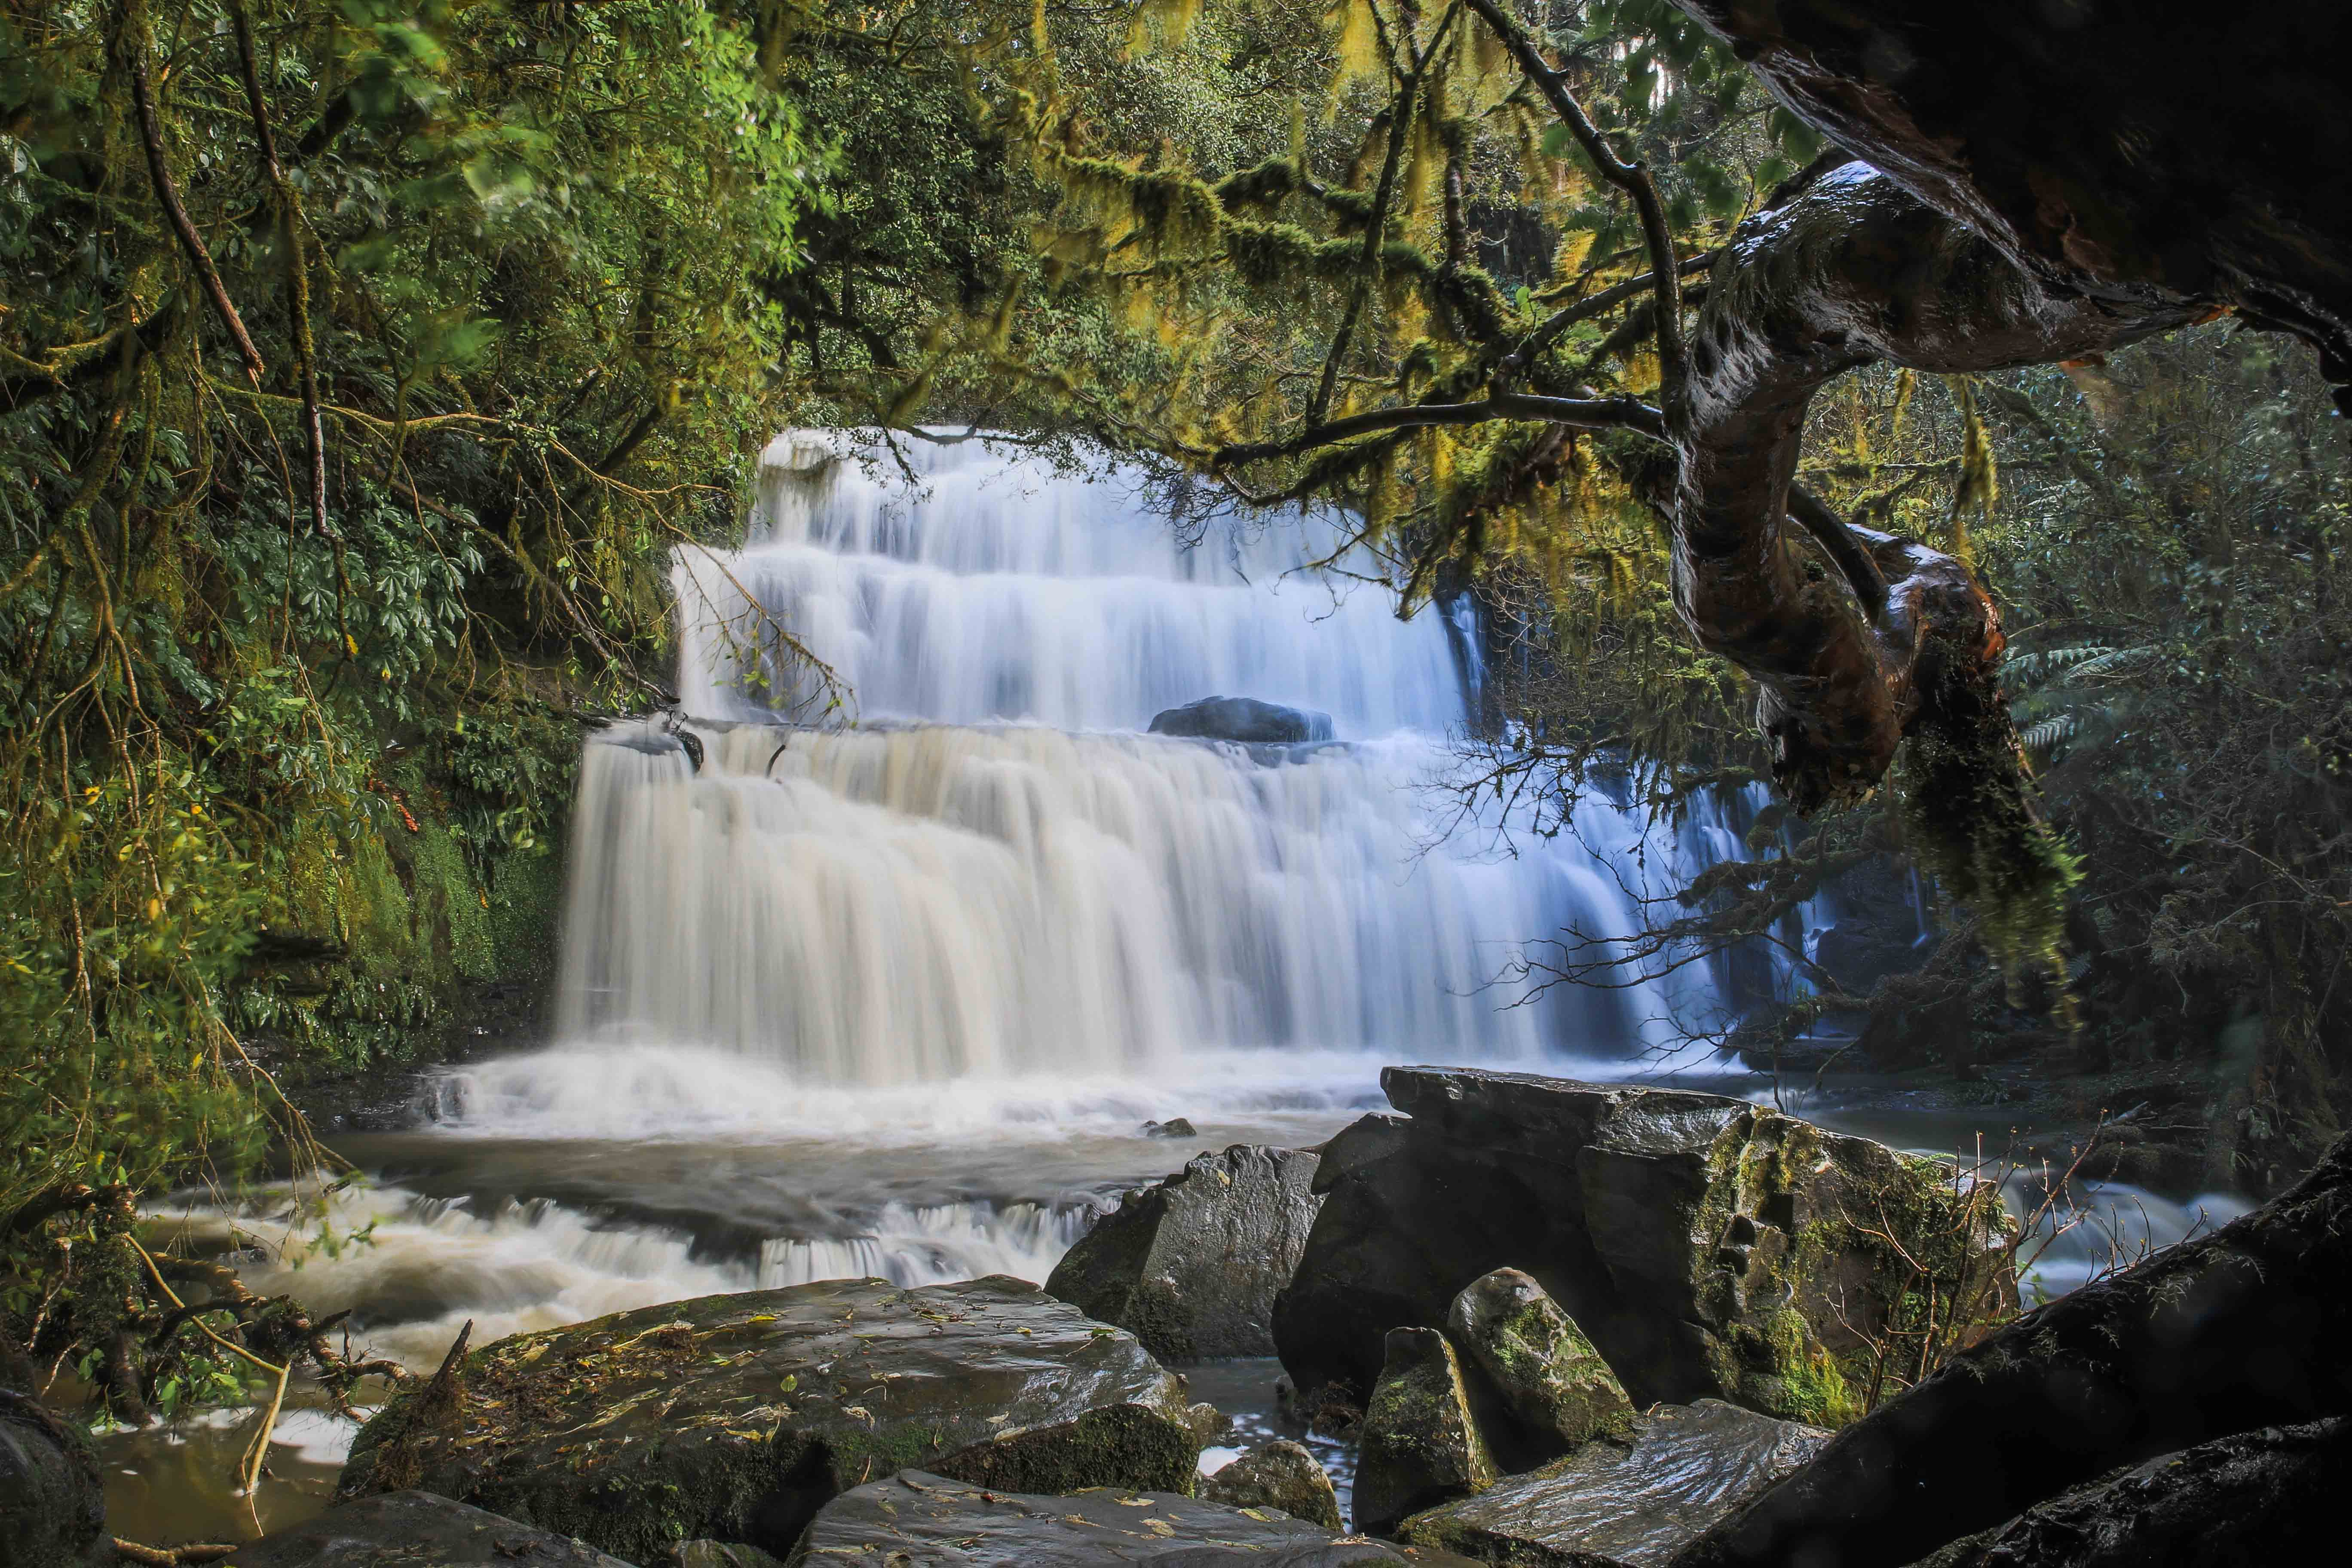 The Catlins Southern Scenic Route